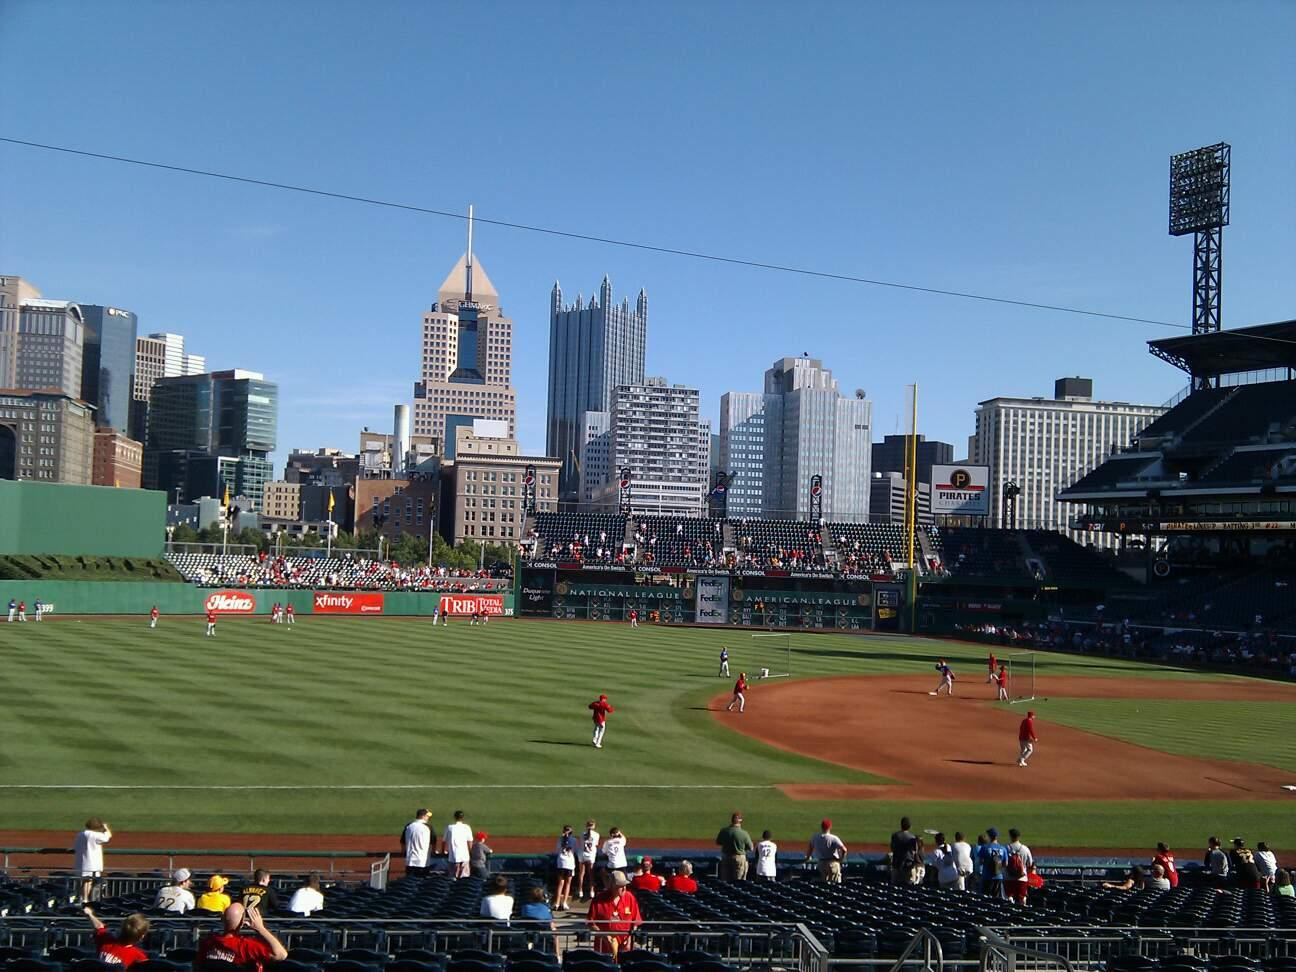 PNC Park Section 127 Row q Seat 8